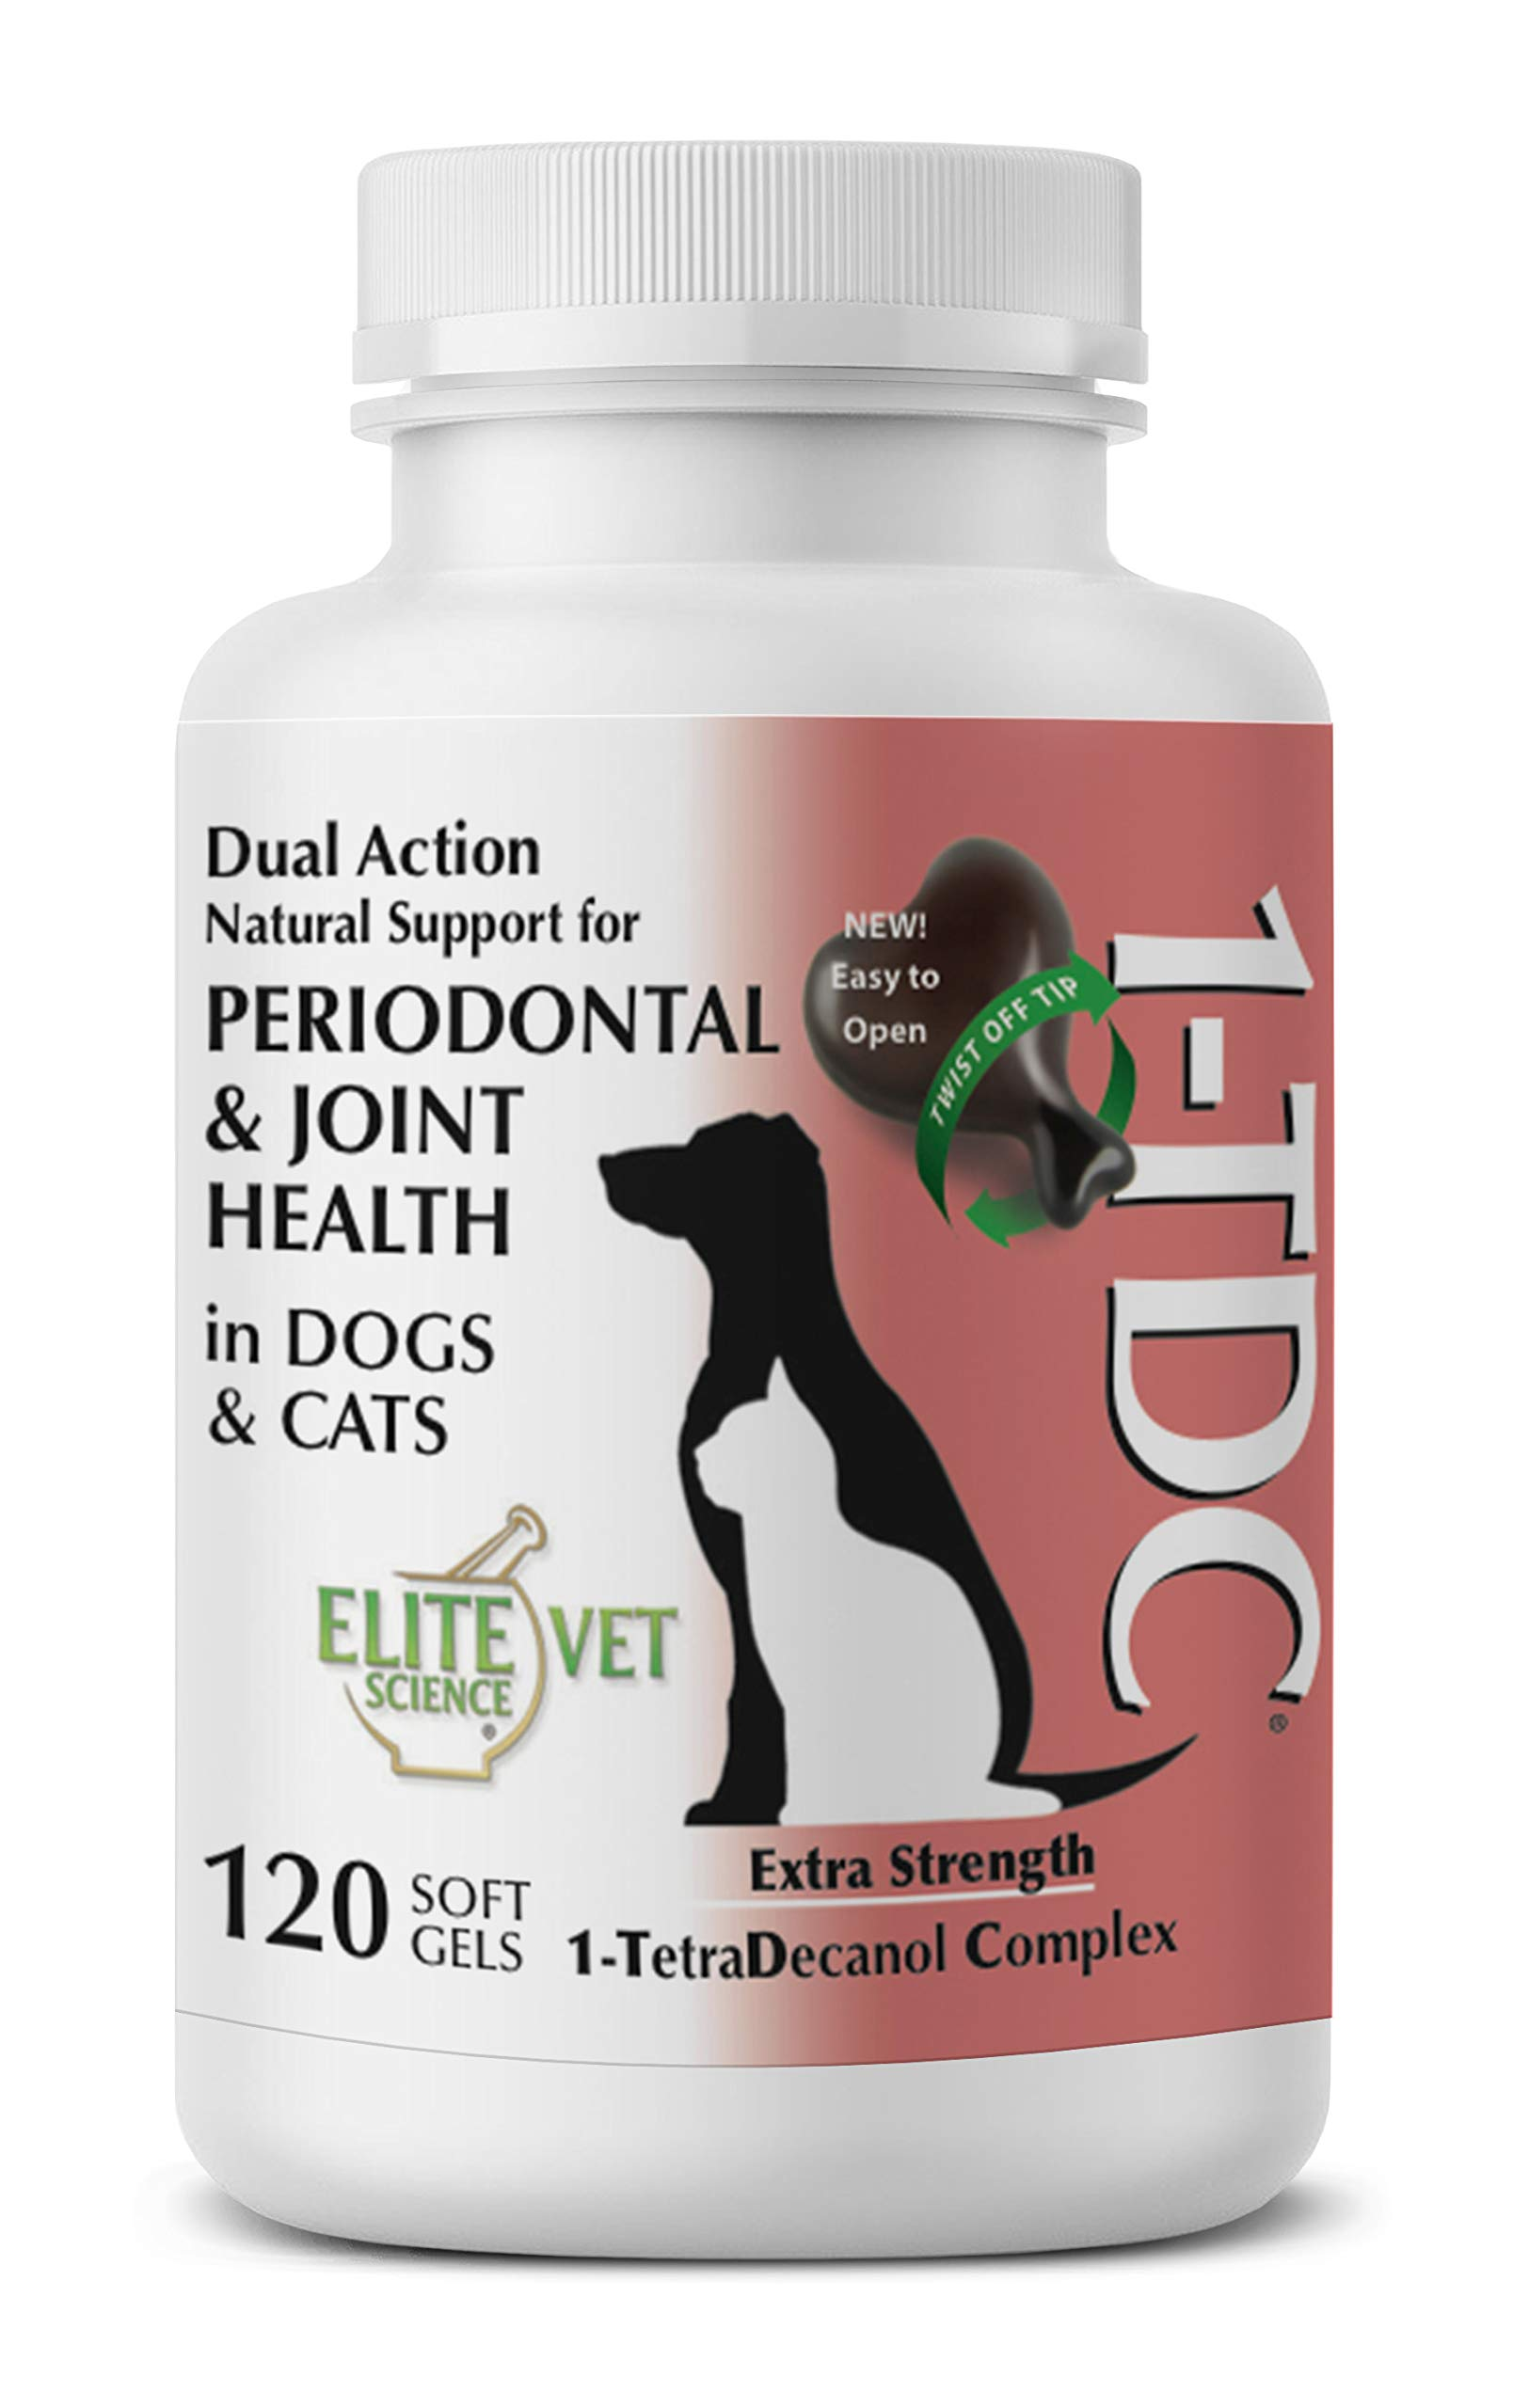 1TDC -Dual Action Natural Support - 120 Twist Off Soft Gels - Delivers 4 Major Health Benefits for Dogs & Cats - Supports Oral Health, Hip & Joint Health, Muscle & Stamina Recovery, Skin & Coat Health by 1-TDC